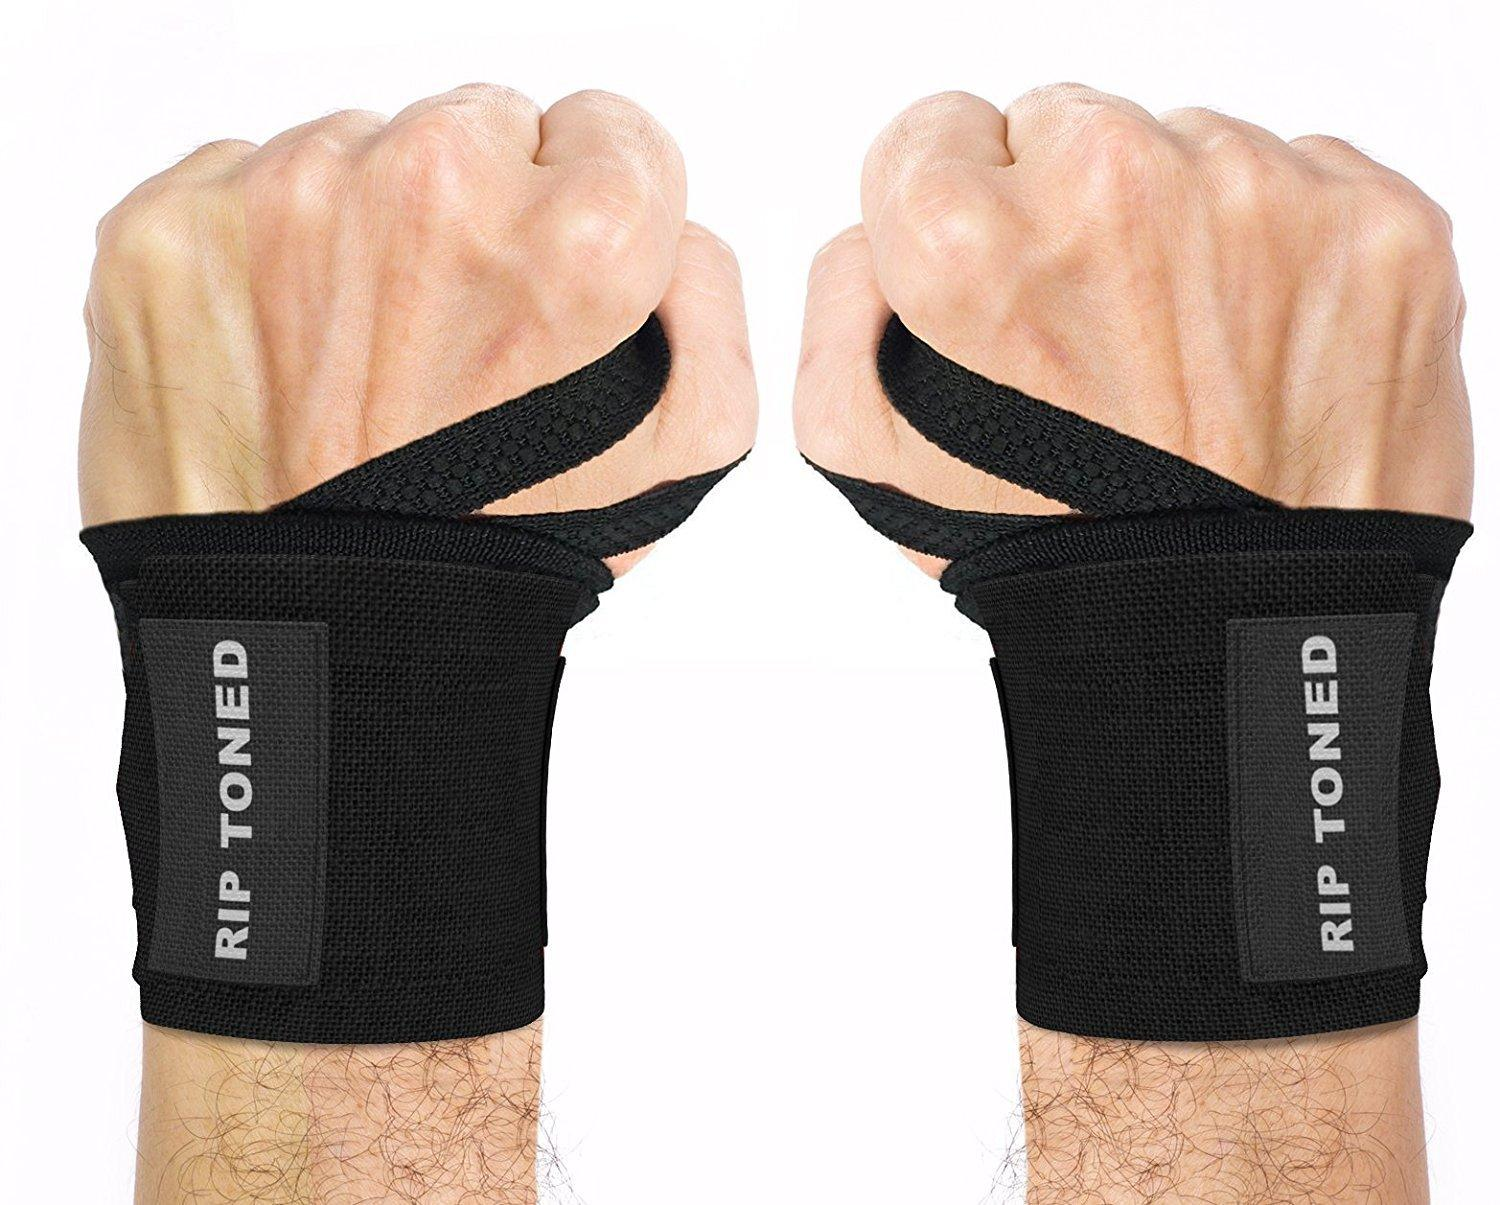 Wrist Wraps by Rip Toned - 18  Professional Grade With Thumb Loops - Wrist Support Braces for Men & Women - Weight Lifting